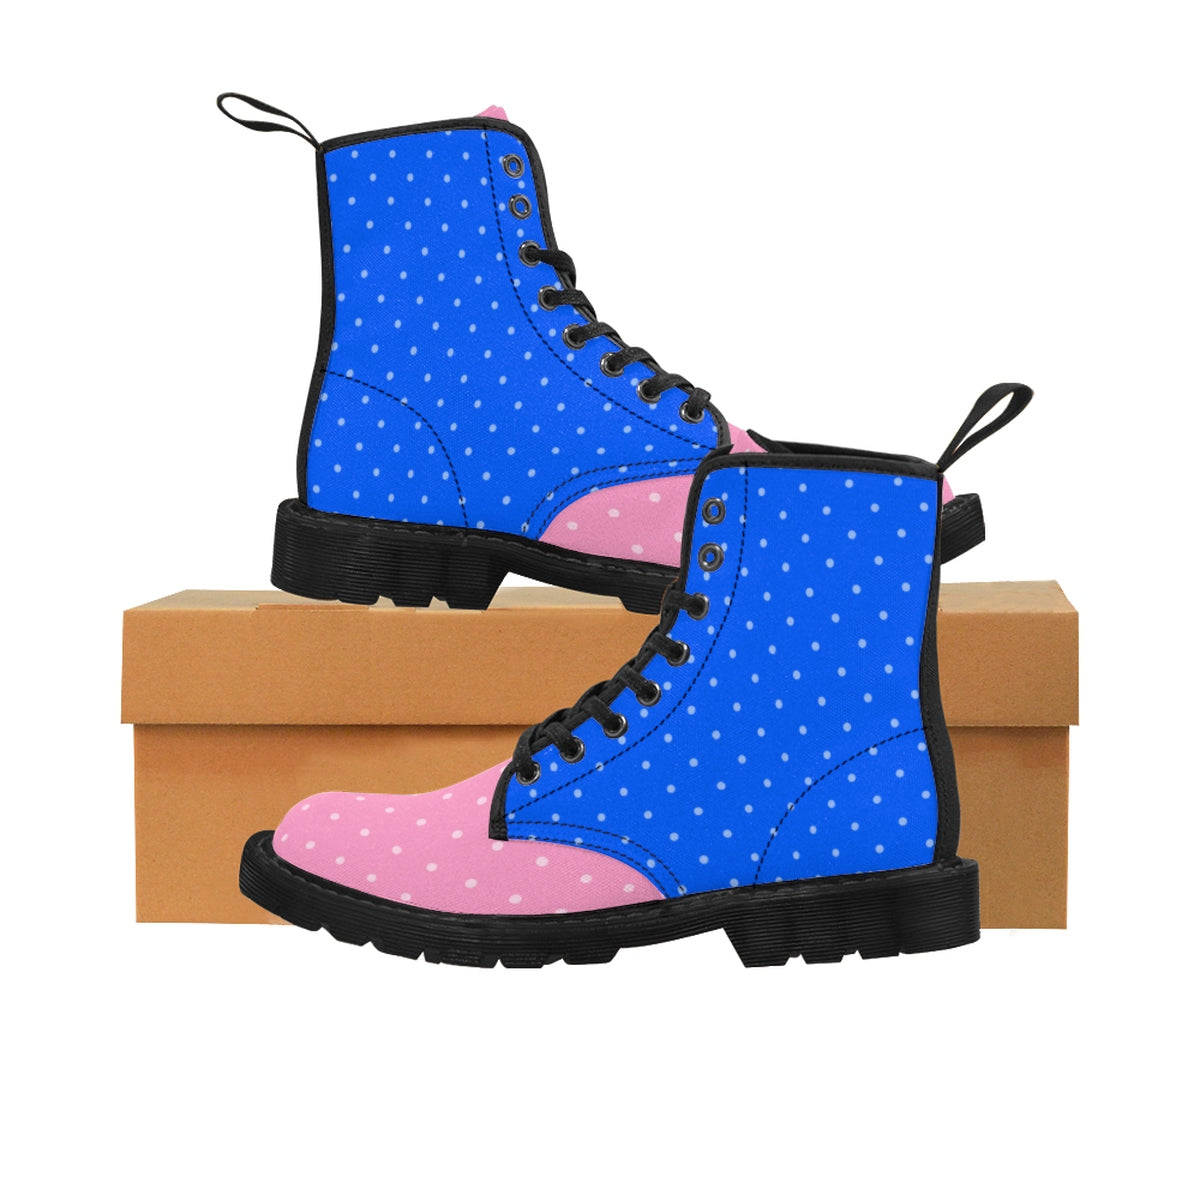 Blue and Pink Polka Dot Women's Martin Style Boots Shoes - Polka Dotted All The Things Boutique